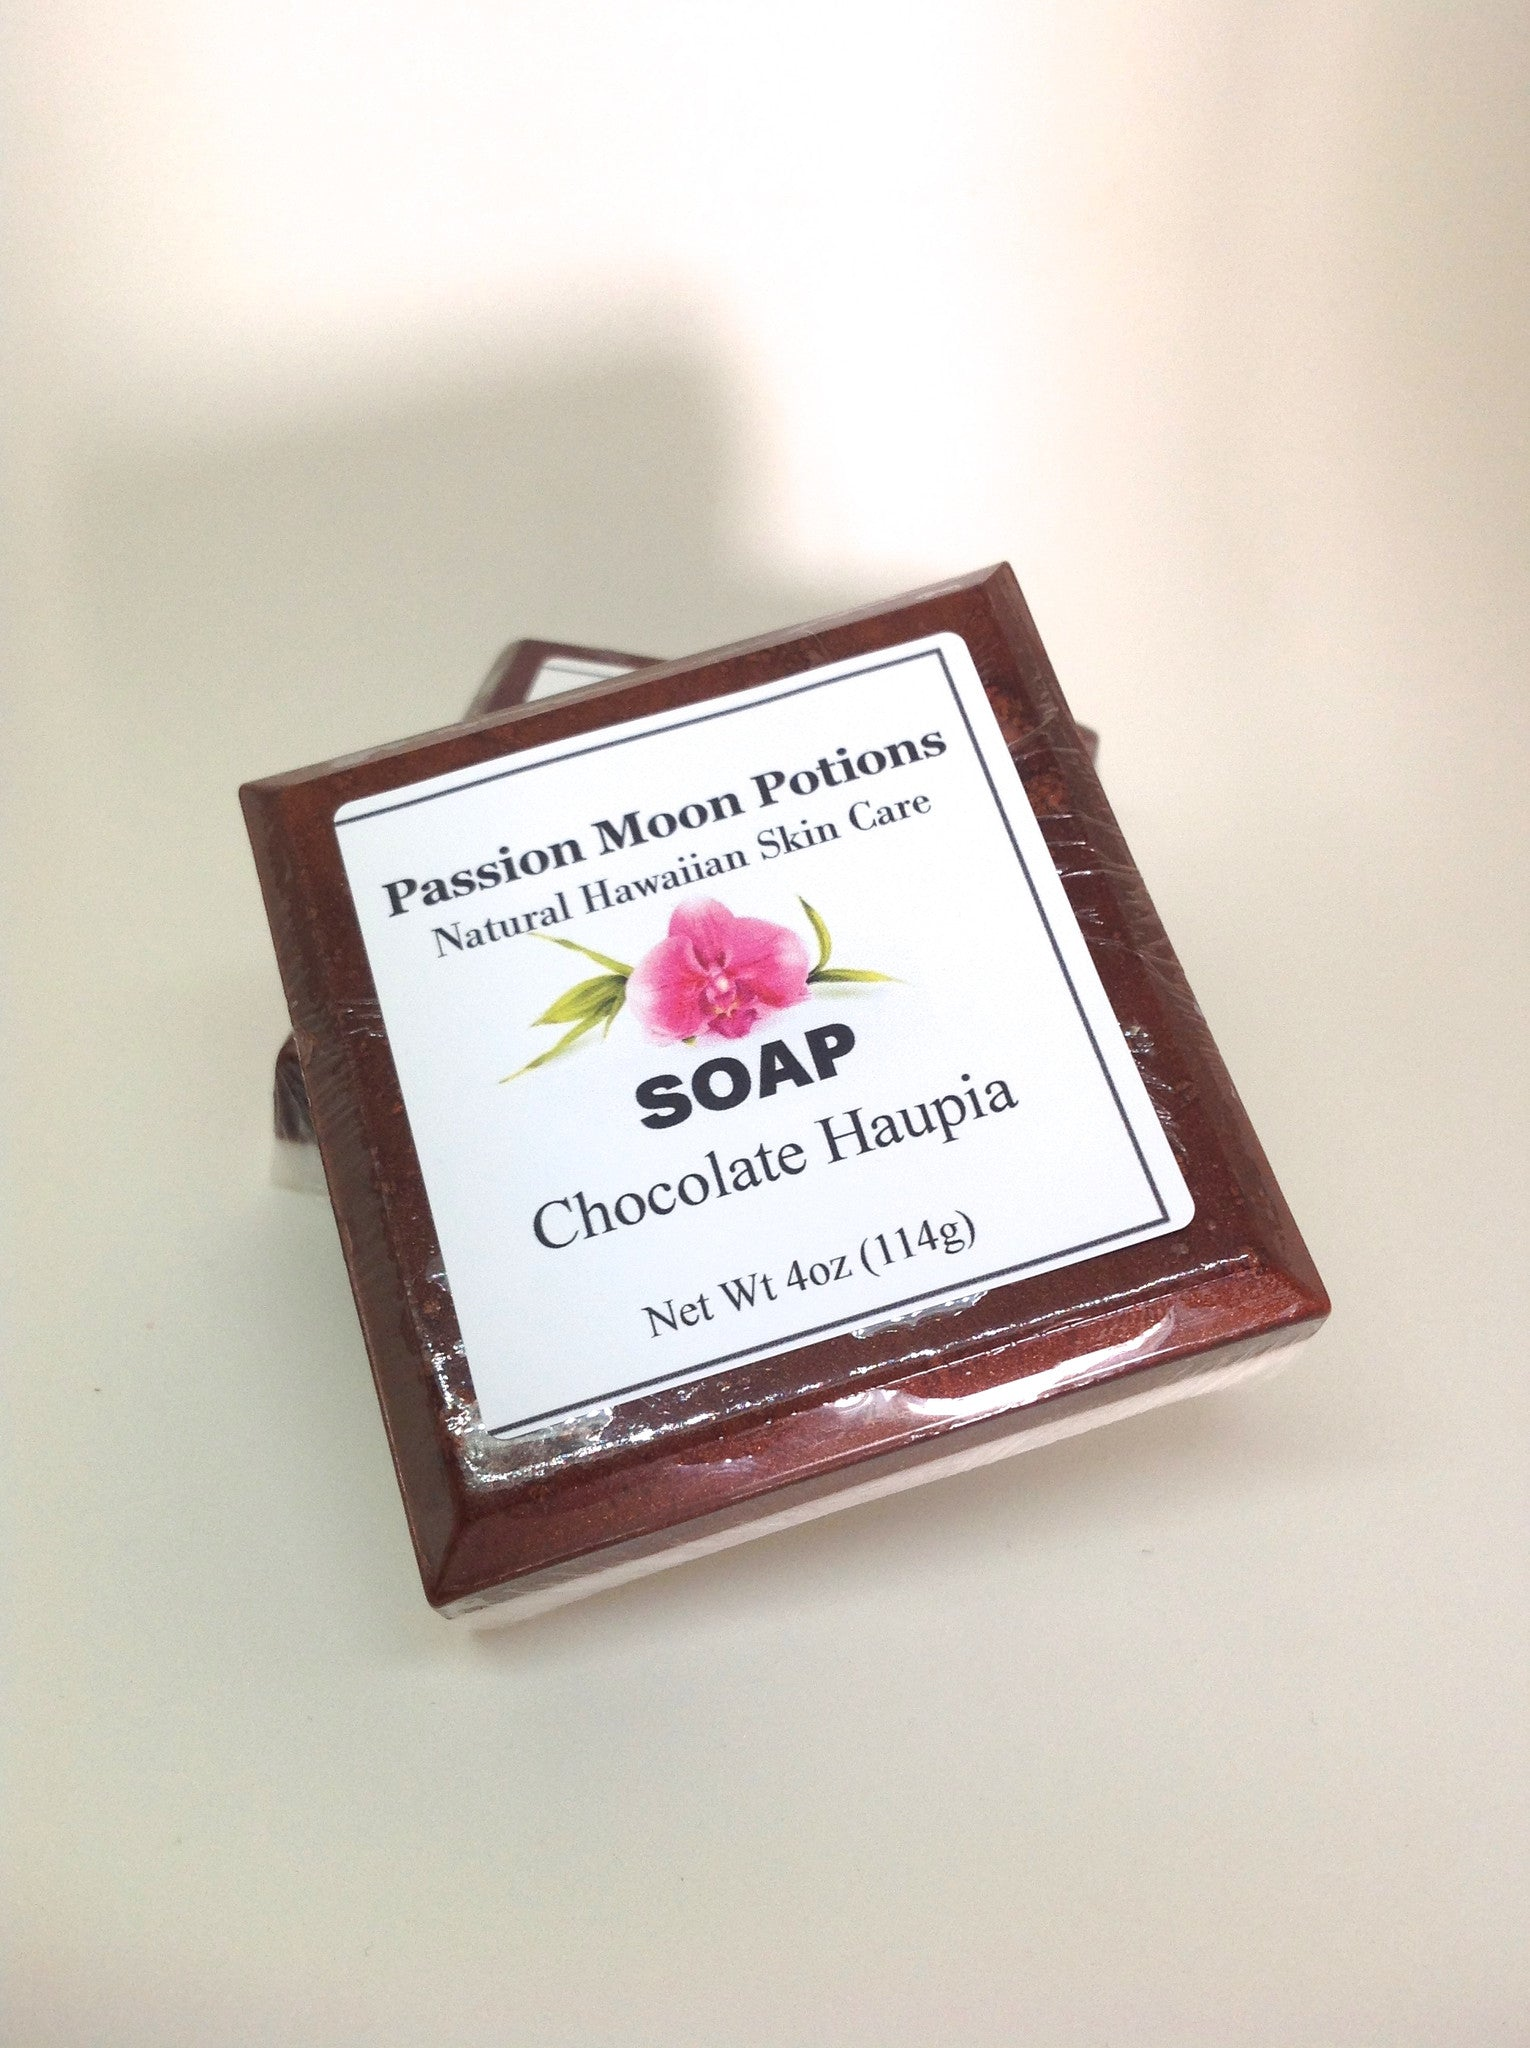 Chocolate Haupia Soap - Passion Moon Potions - 1